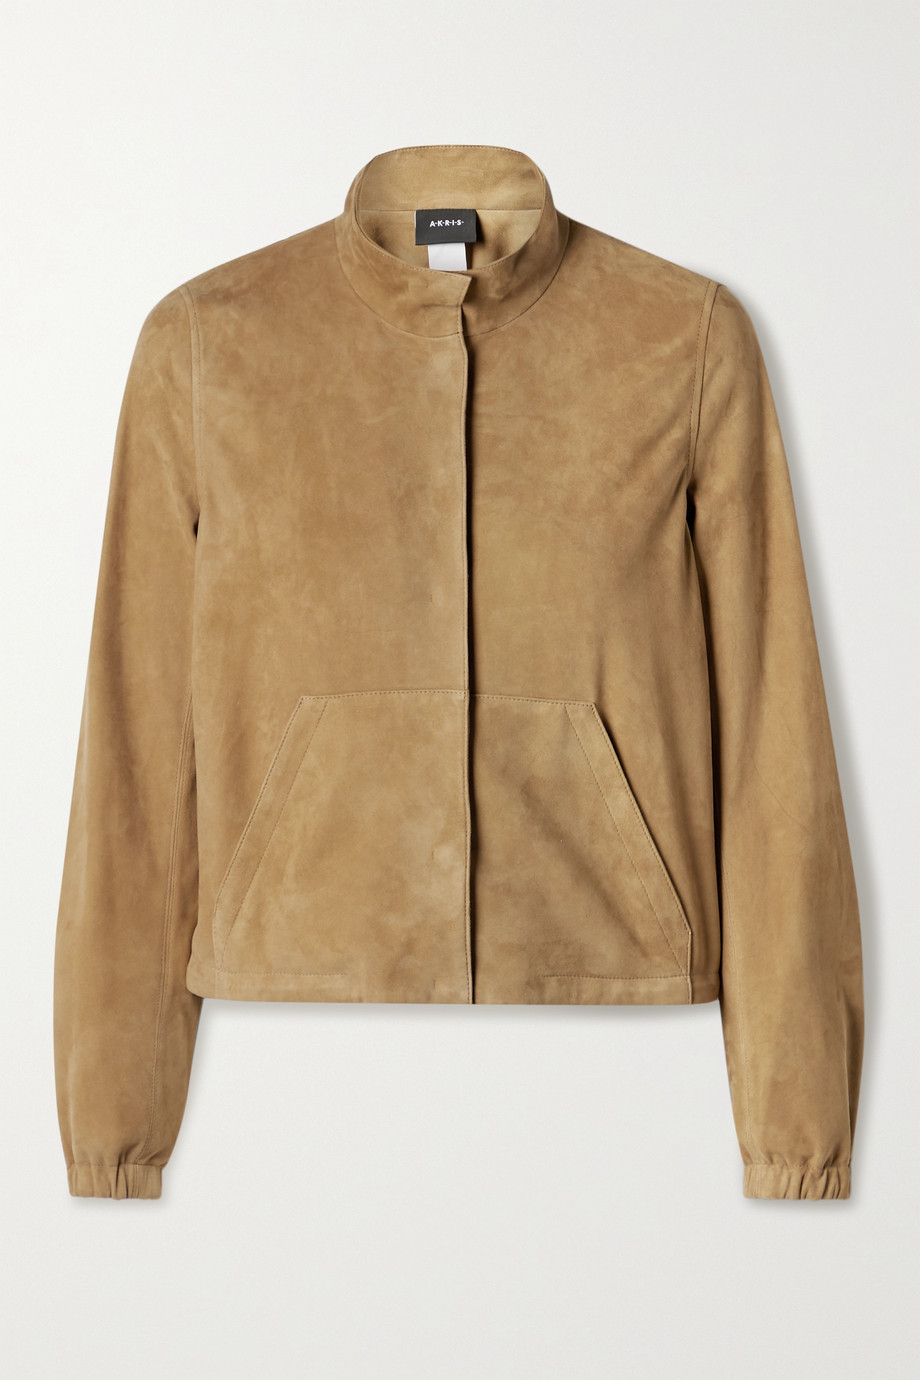 Akris Mabelle suede jacket